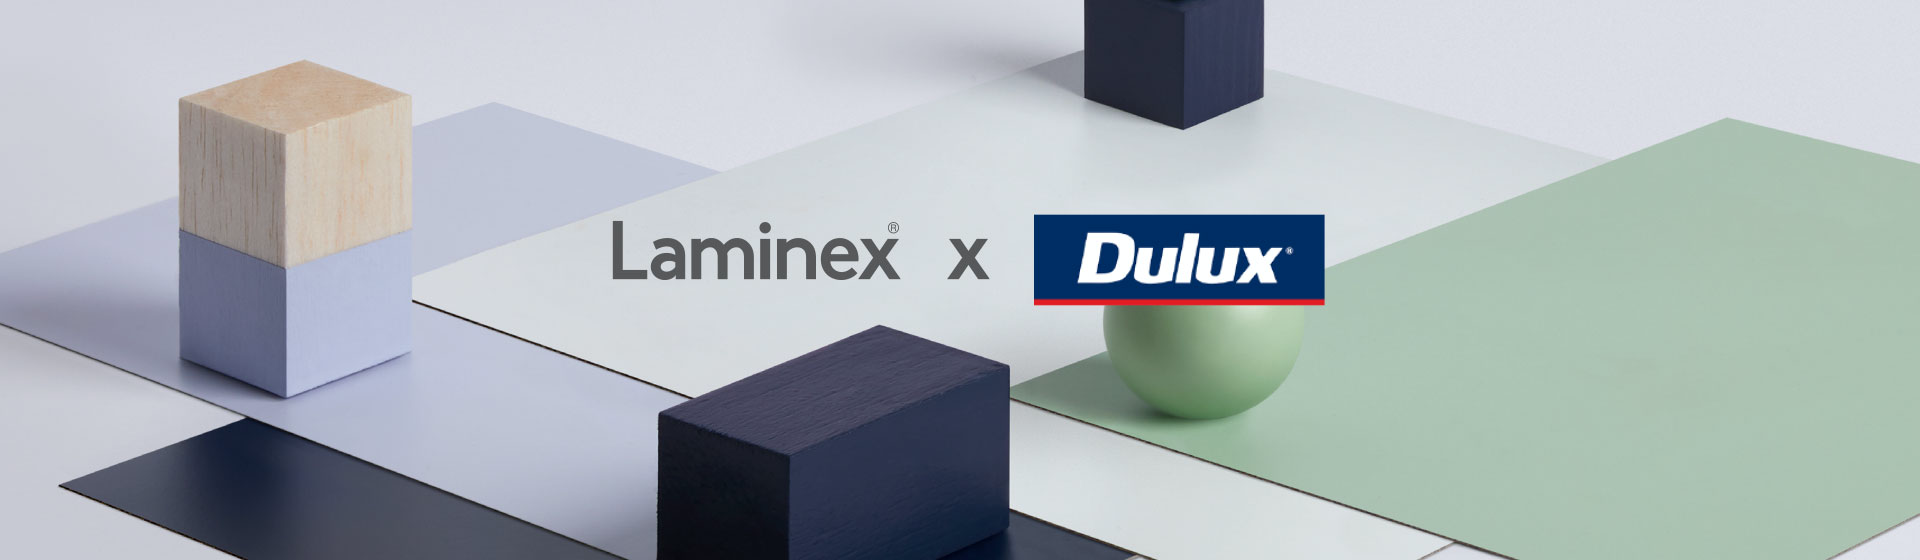 dulux Page Media 1